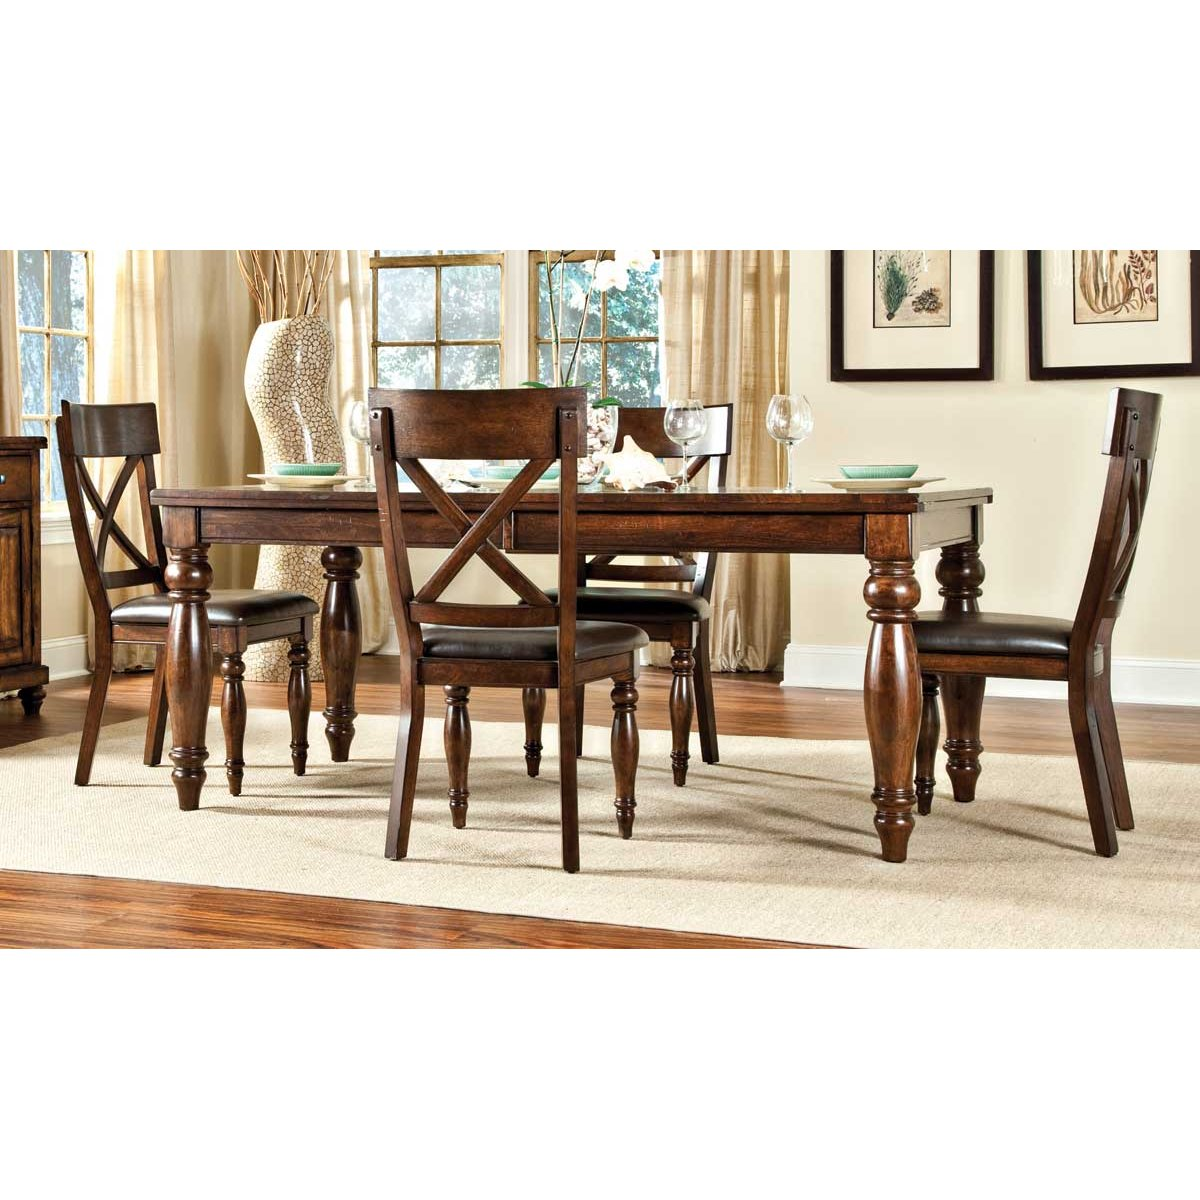 x back chairs saddle chair or stool raisin 5 piece dining set with kingston rc willey furniture store